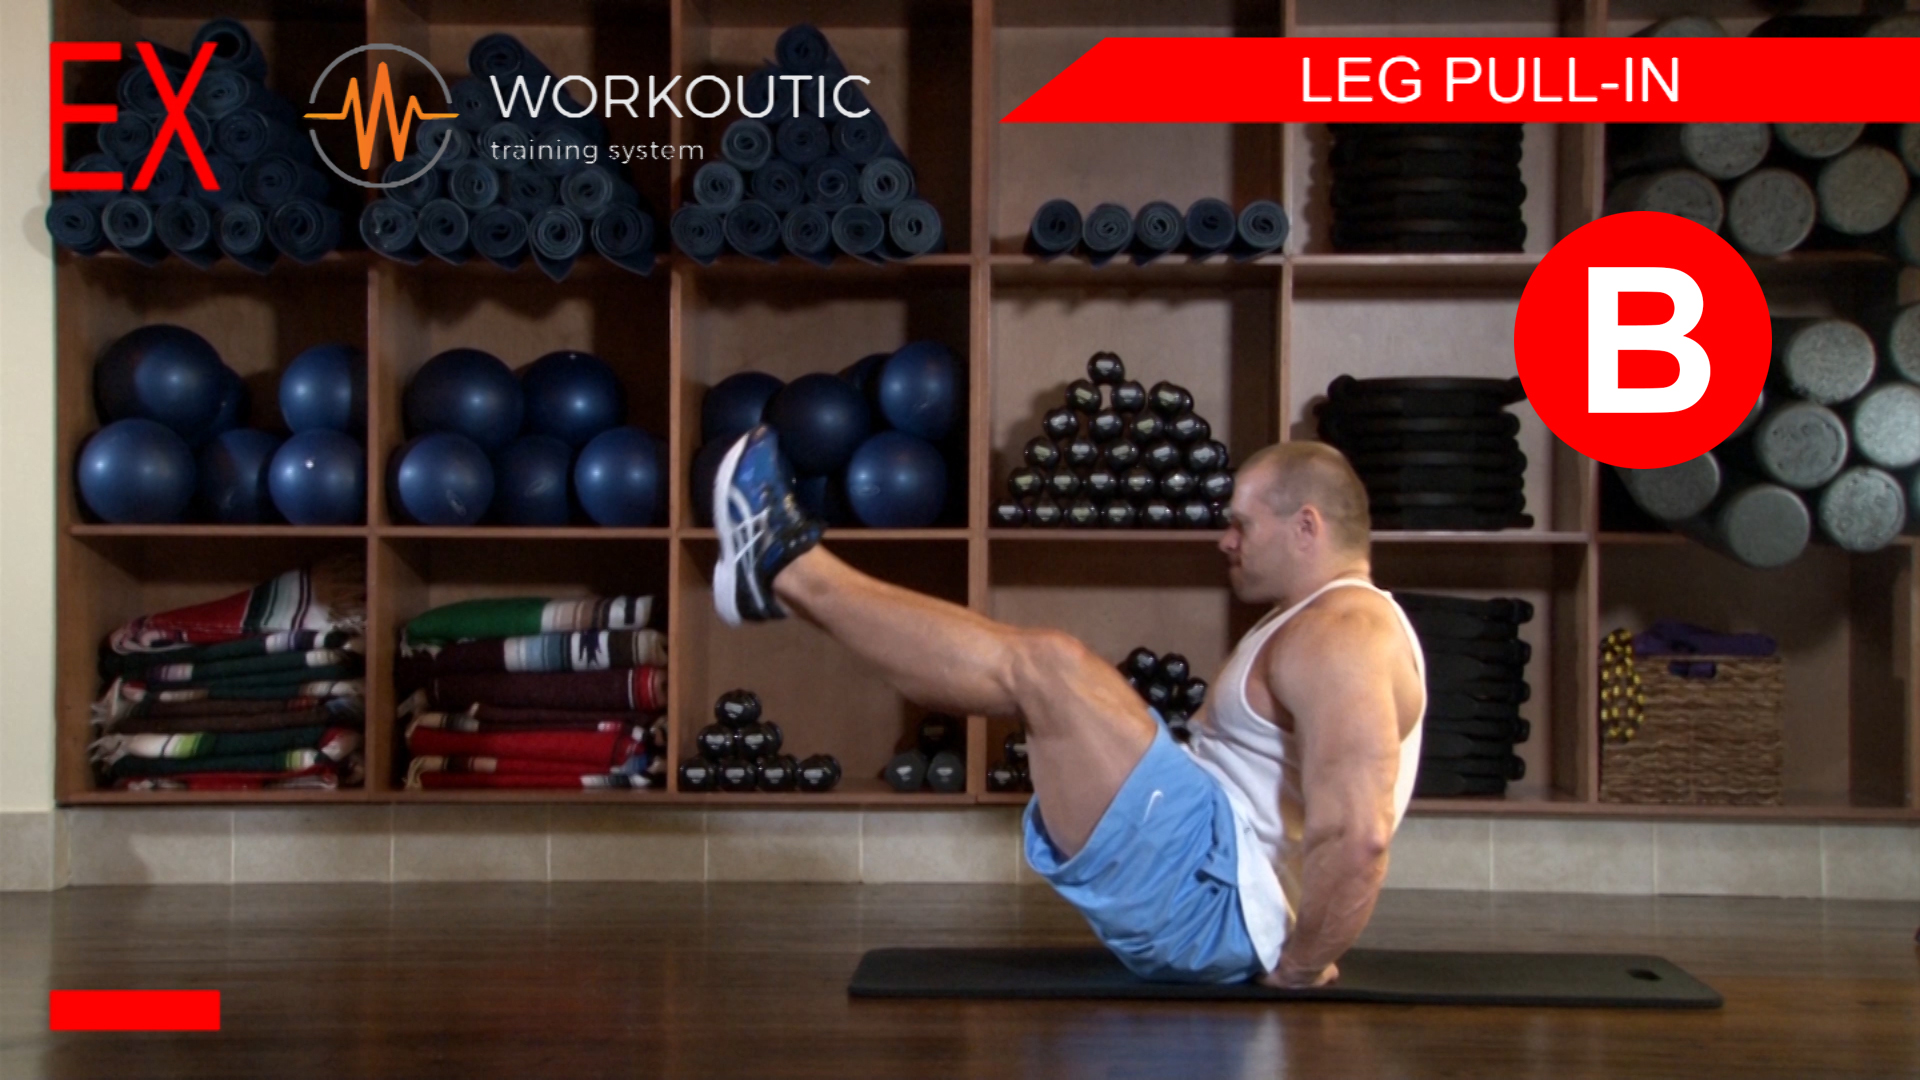 Abs Exercises - Workutic - 6 pack special - Leg Pull In Exhale